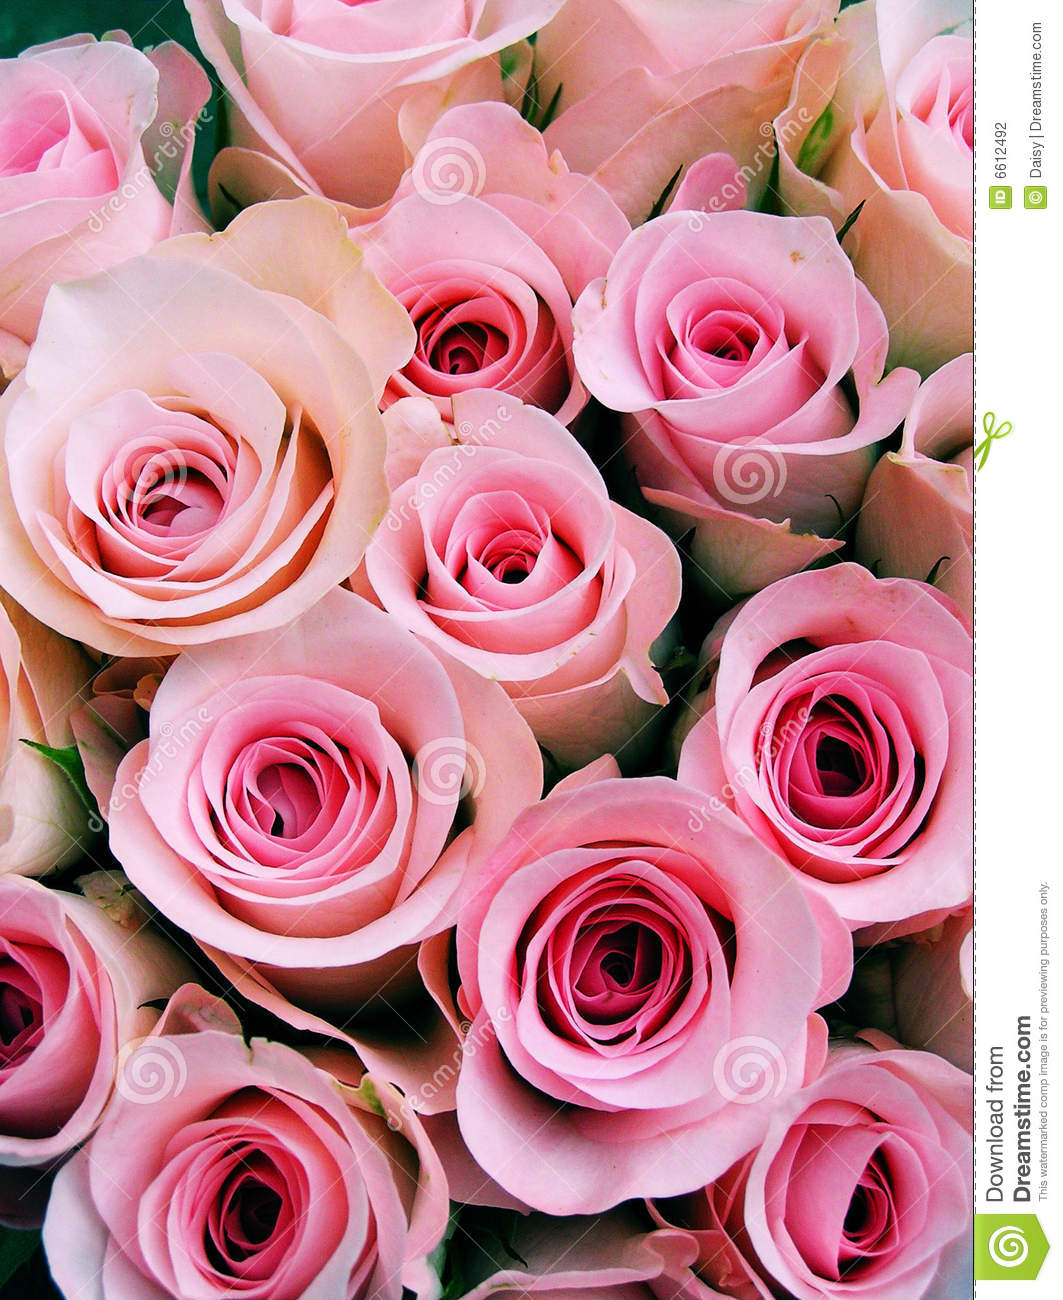 Pink baby roses